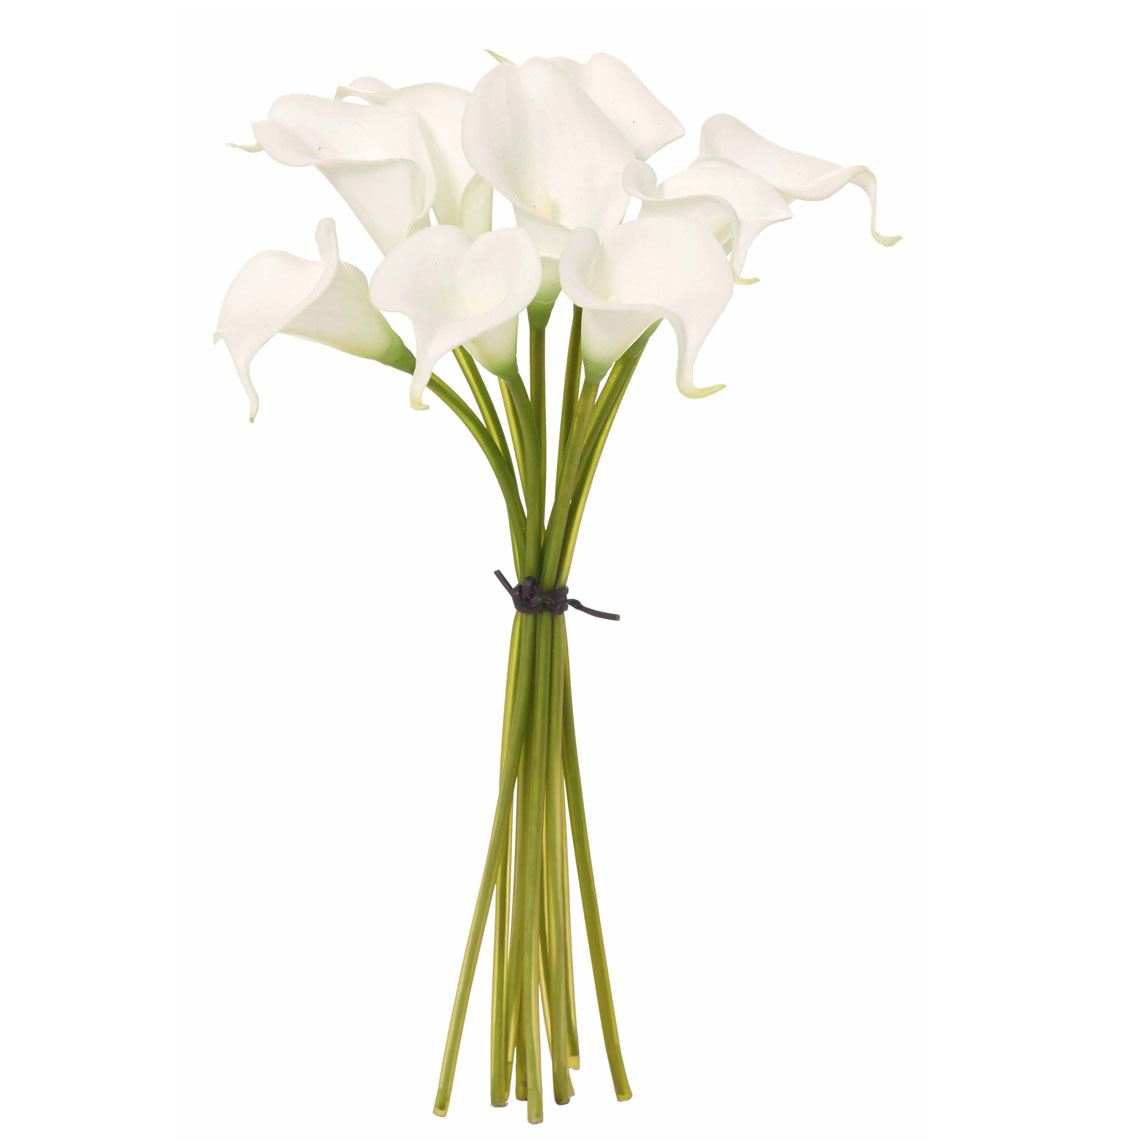 Calla Lilly Bouquet Size W 20cm x D 20cm x H 36cm in White Plastic/Metal/Foam Freedom by Freedom, a Plants for sale on Style Sourcebook